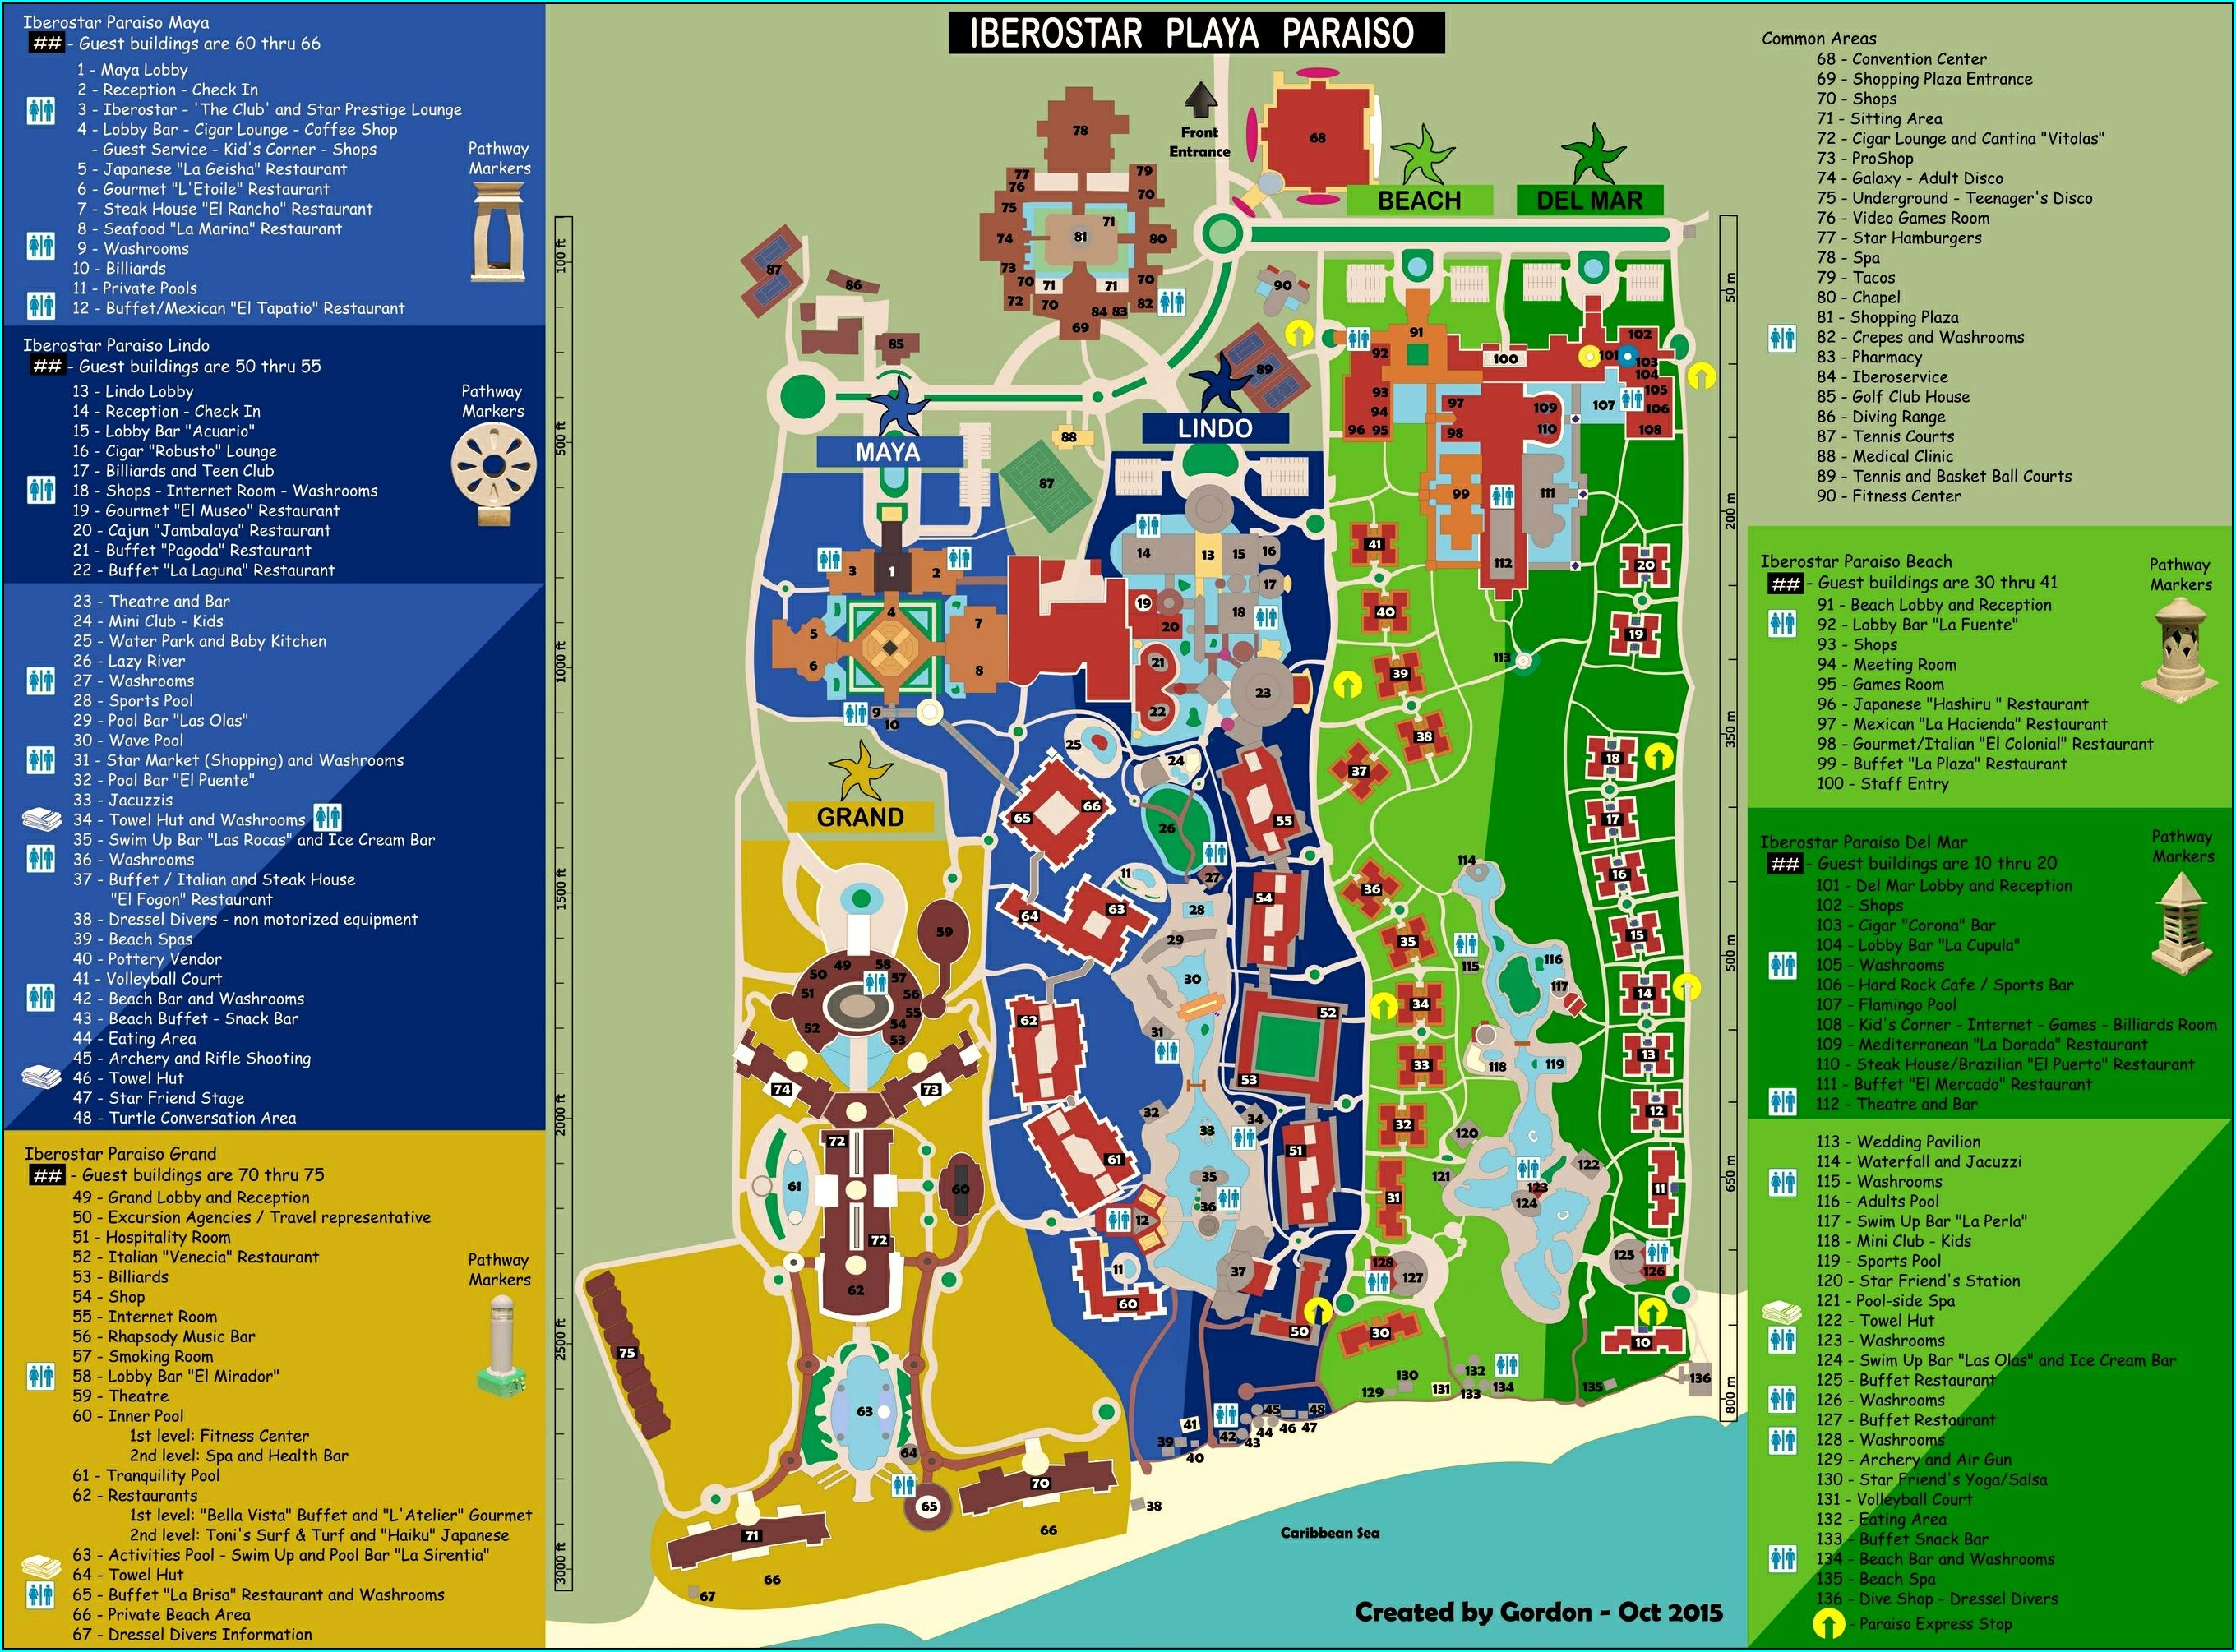 Iberostar Paraiso Del Mar Resort Map